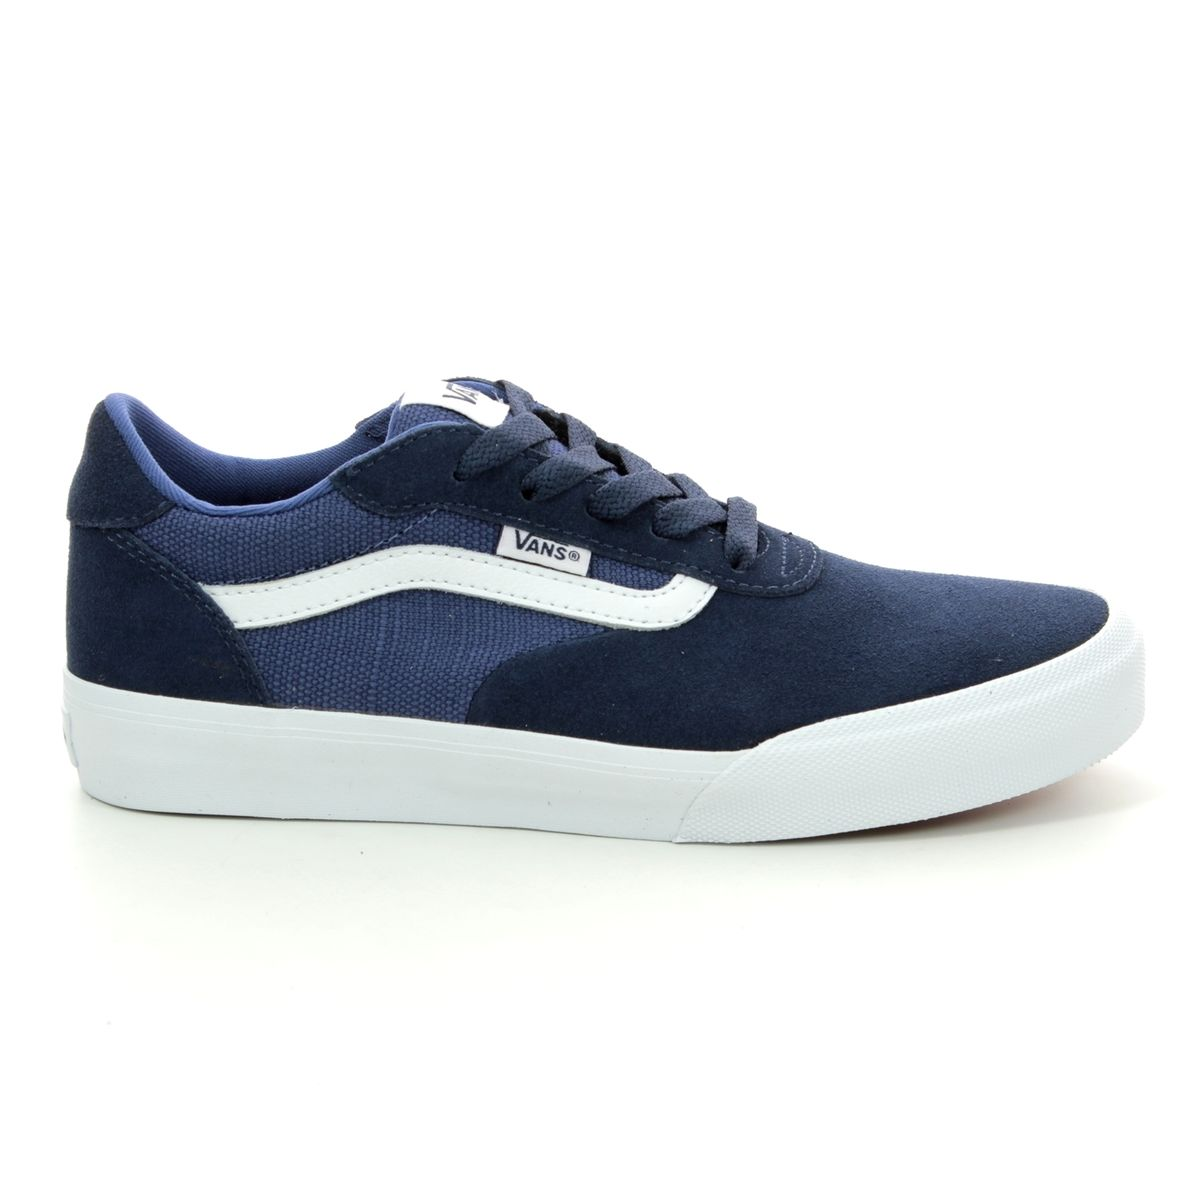 c5d8093d443 Vans Trainers - Navy - VN0A3WMXV G6 PALOMAR YOUTH